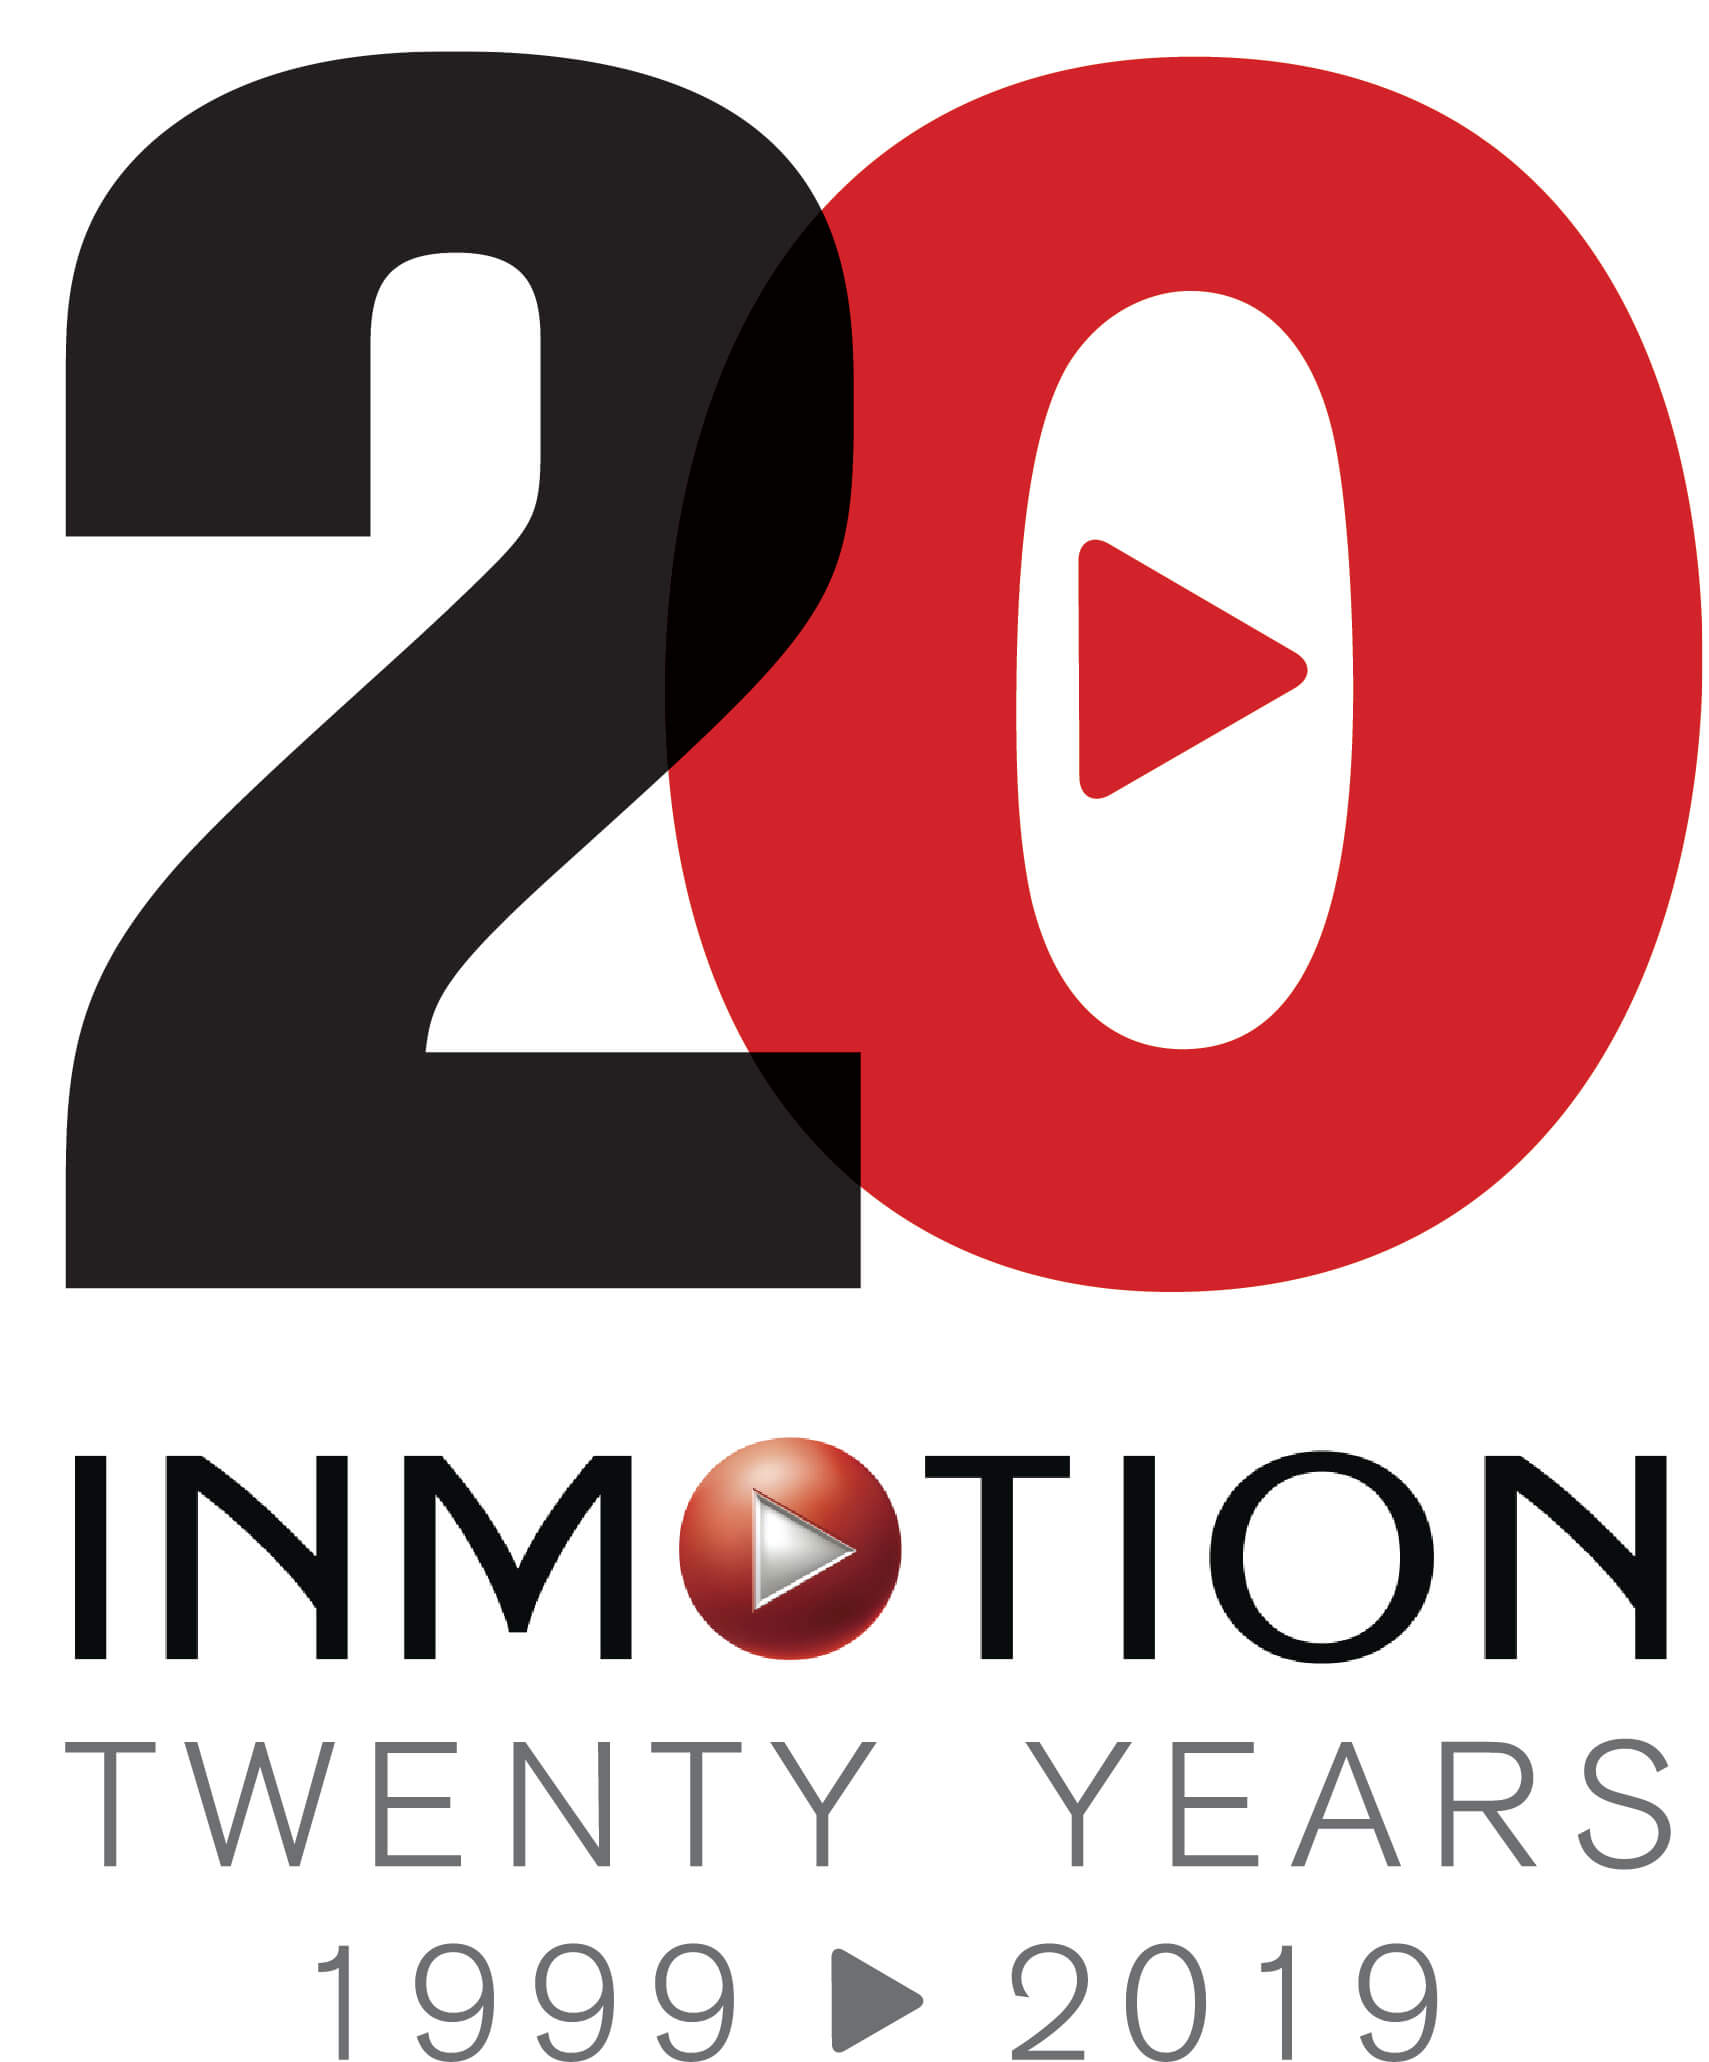 InMotion is Twenty Years Old